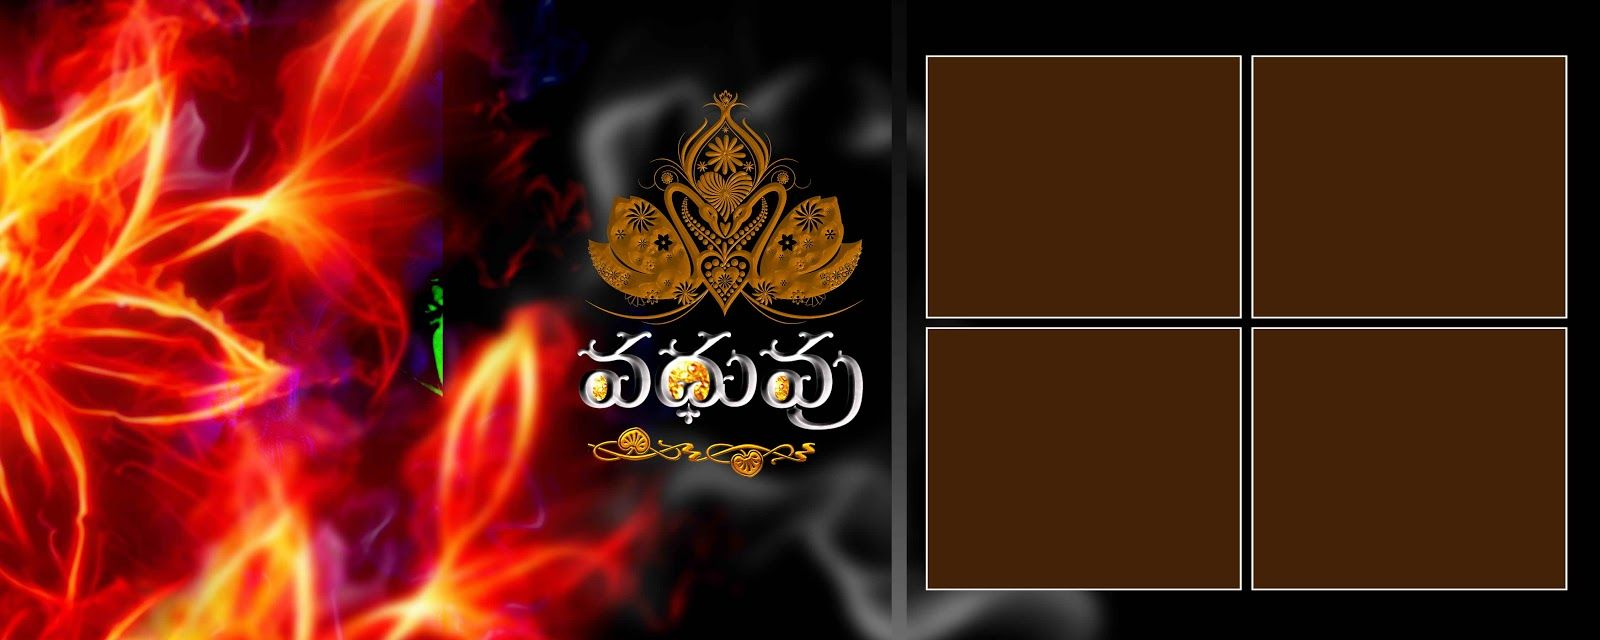 Wedding Photo Background 12x36 Psd Format Free Download In